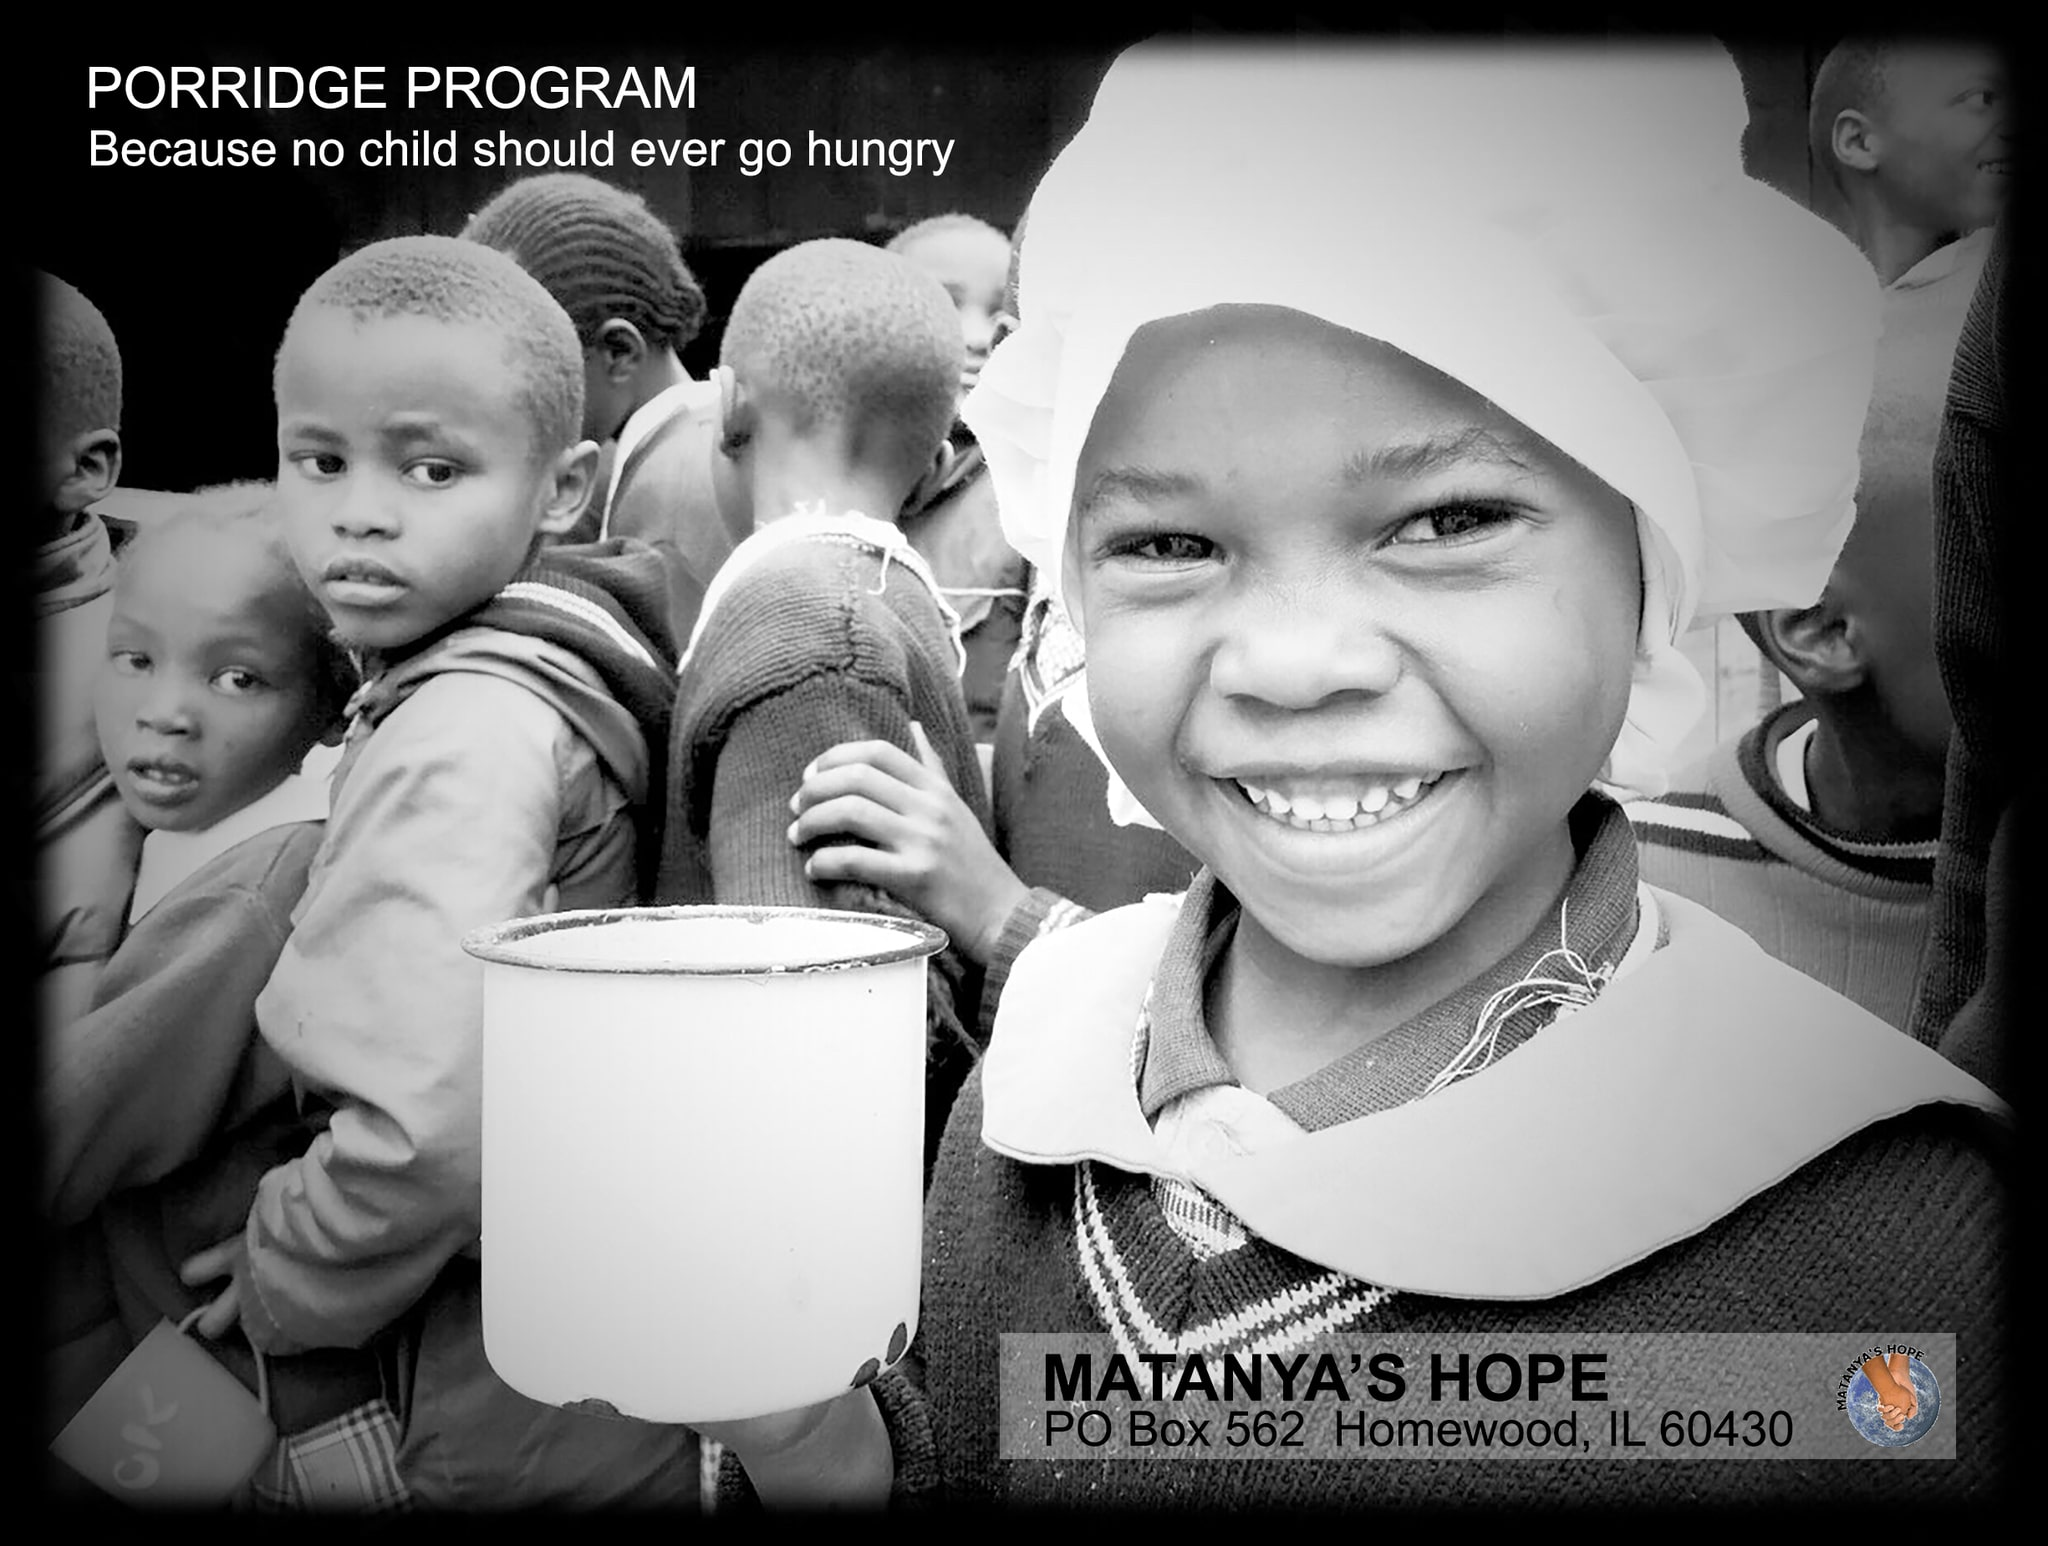 Thanks to Oz of Salt, The Bertram Family, Verde Events, The Gail Scott Family, Stephanie Kazuba and Lucyna Czuba... Matanya's Hope was able to deliver approximately 2,000 cups of hot, nutritious porridge daily this year alone!  This is sometimes the only meal a child will have for an entire day.